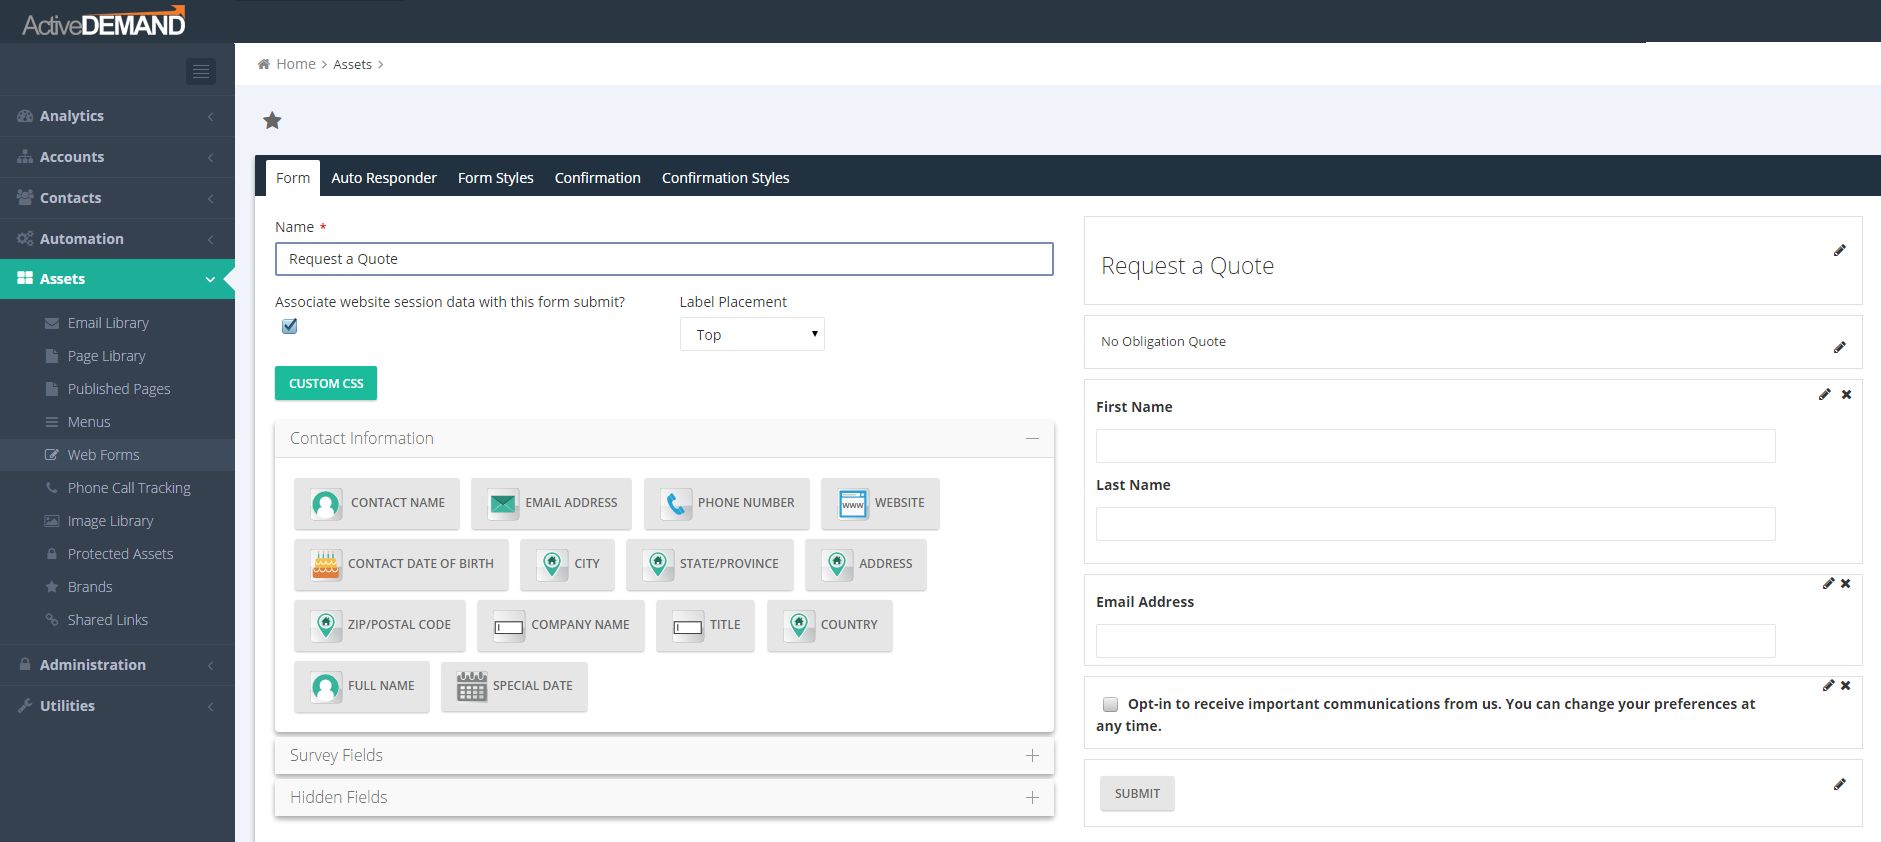 activedemand screenshot 1